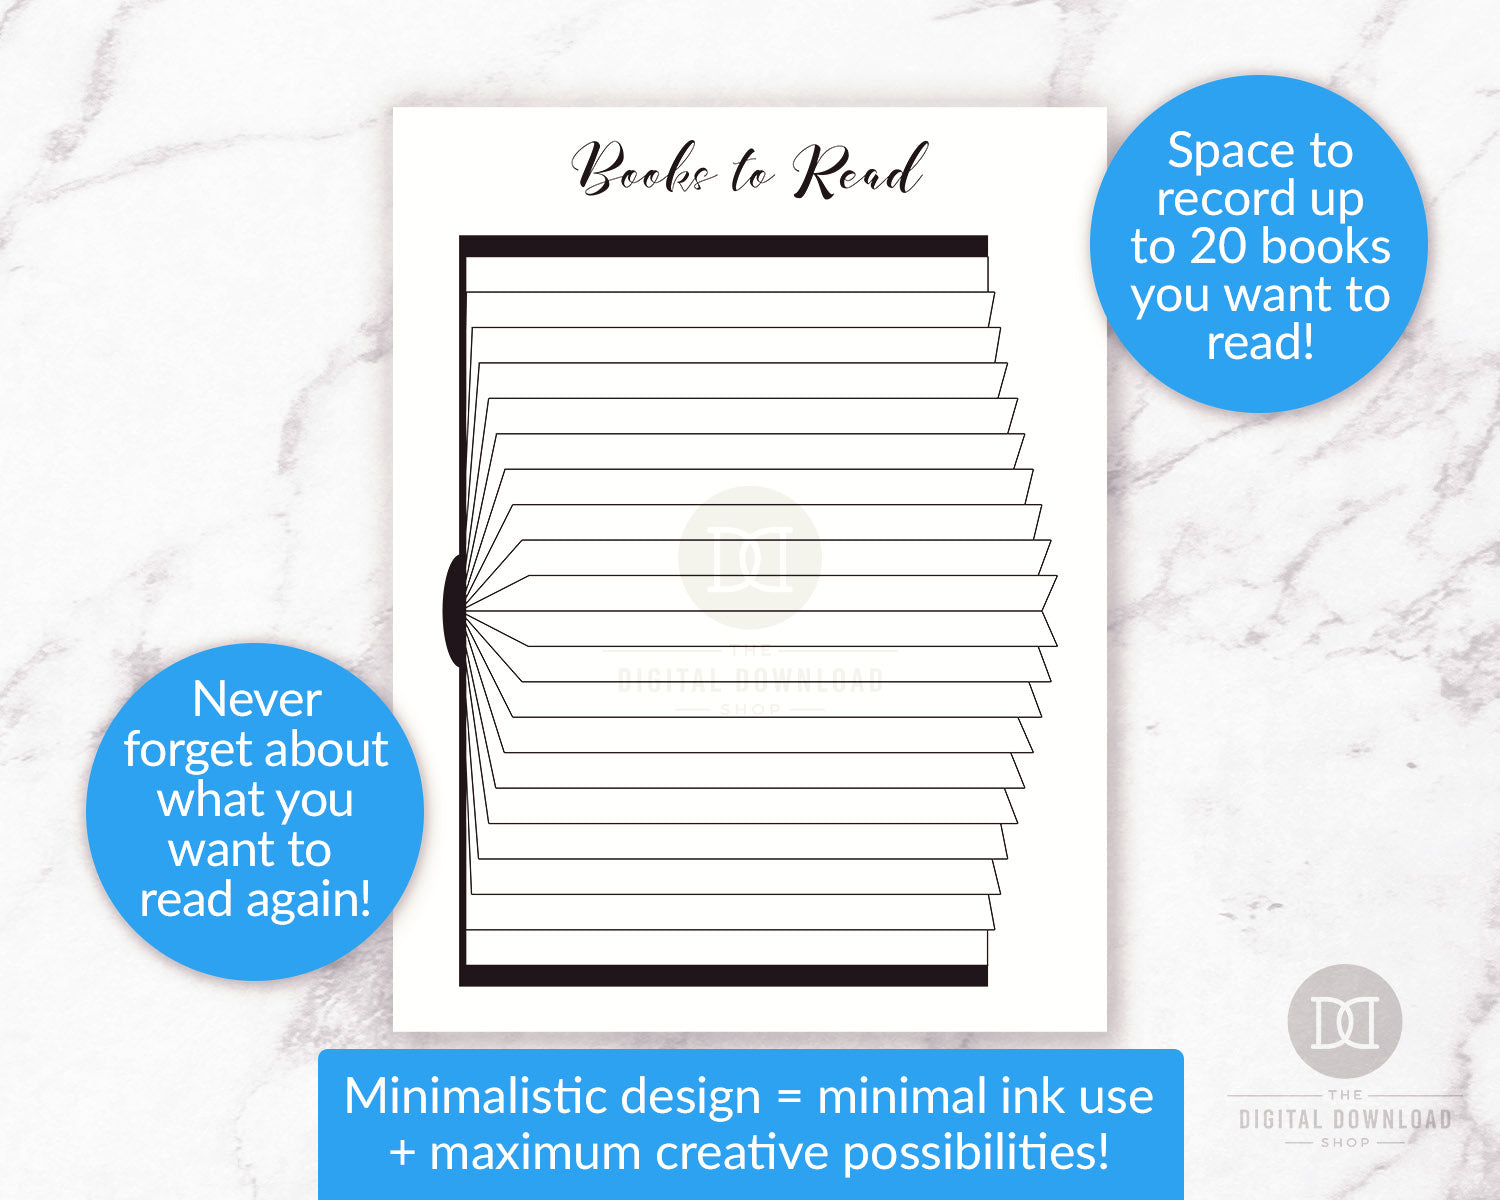 Books to Read Bullet Journal Printable | The Digital Download Shop